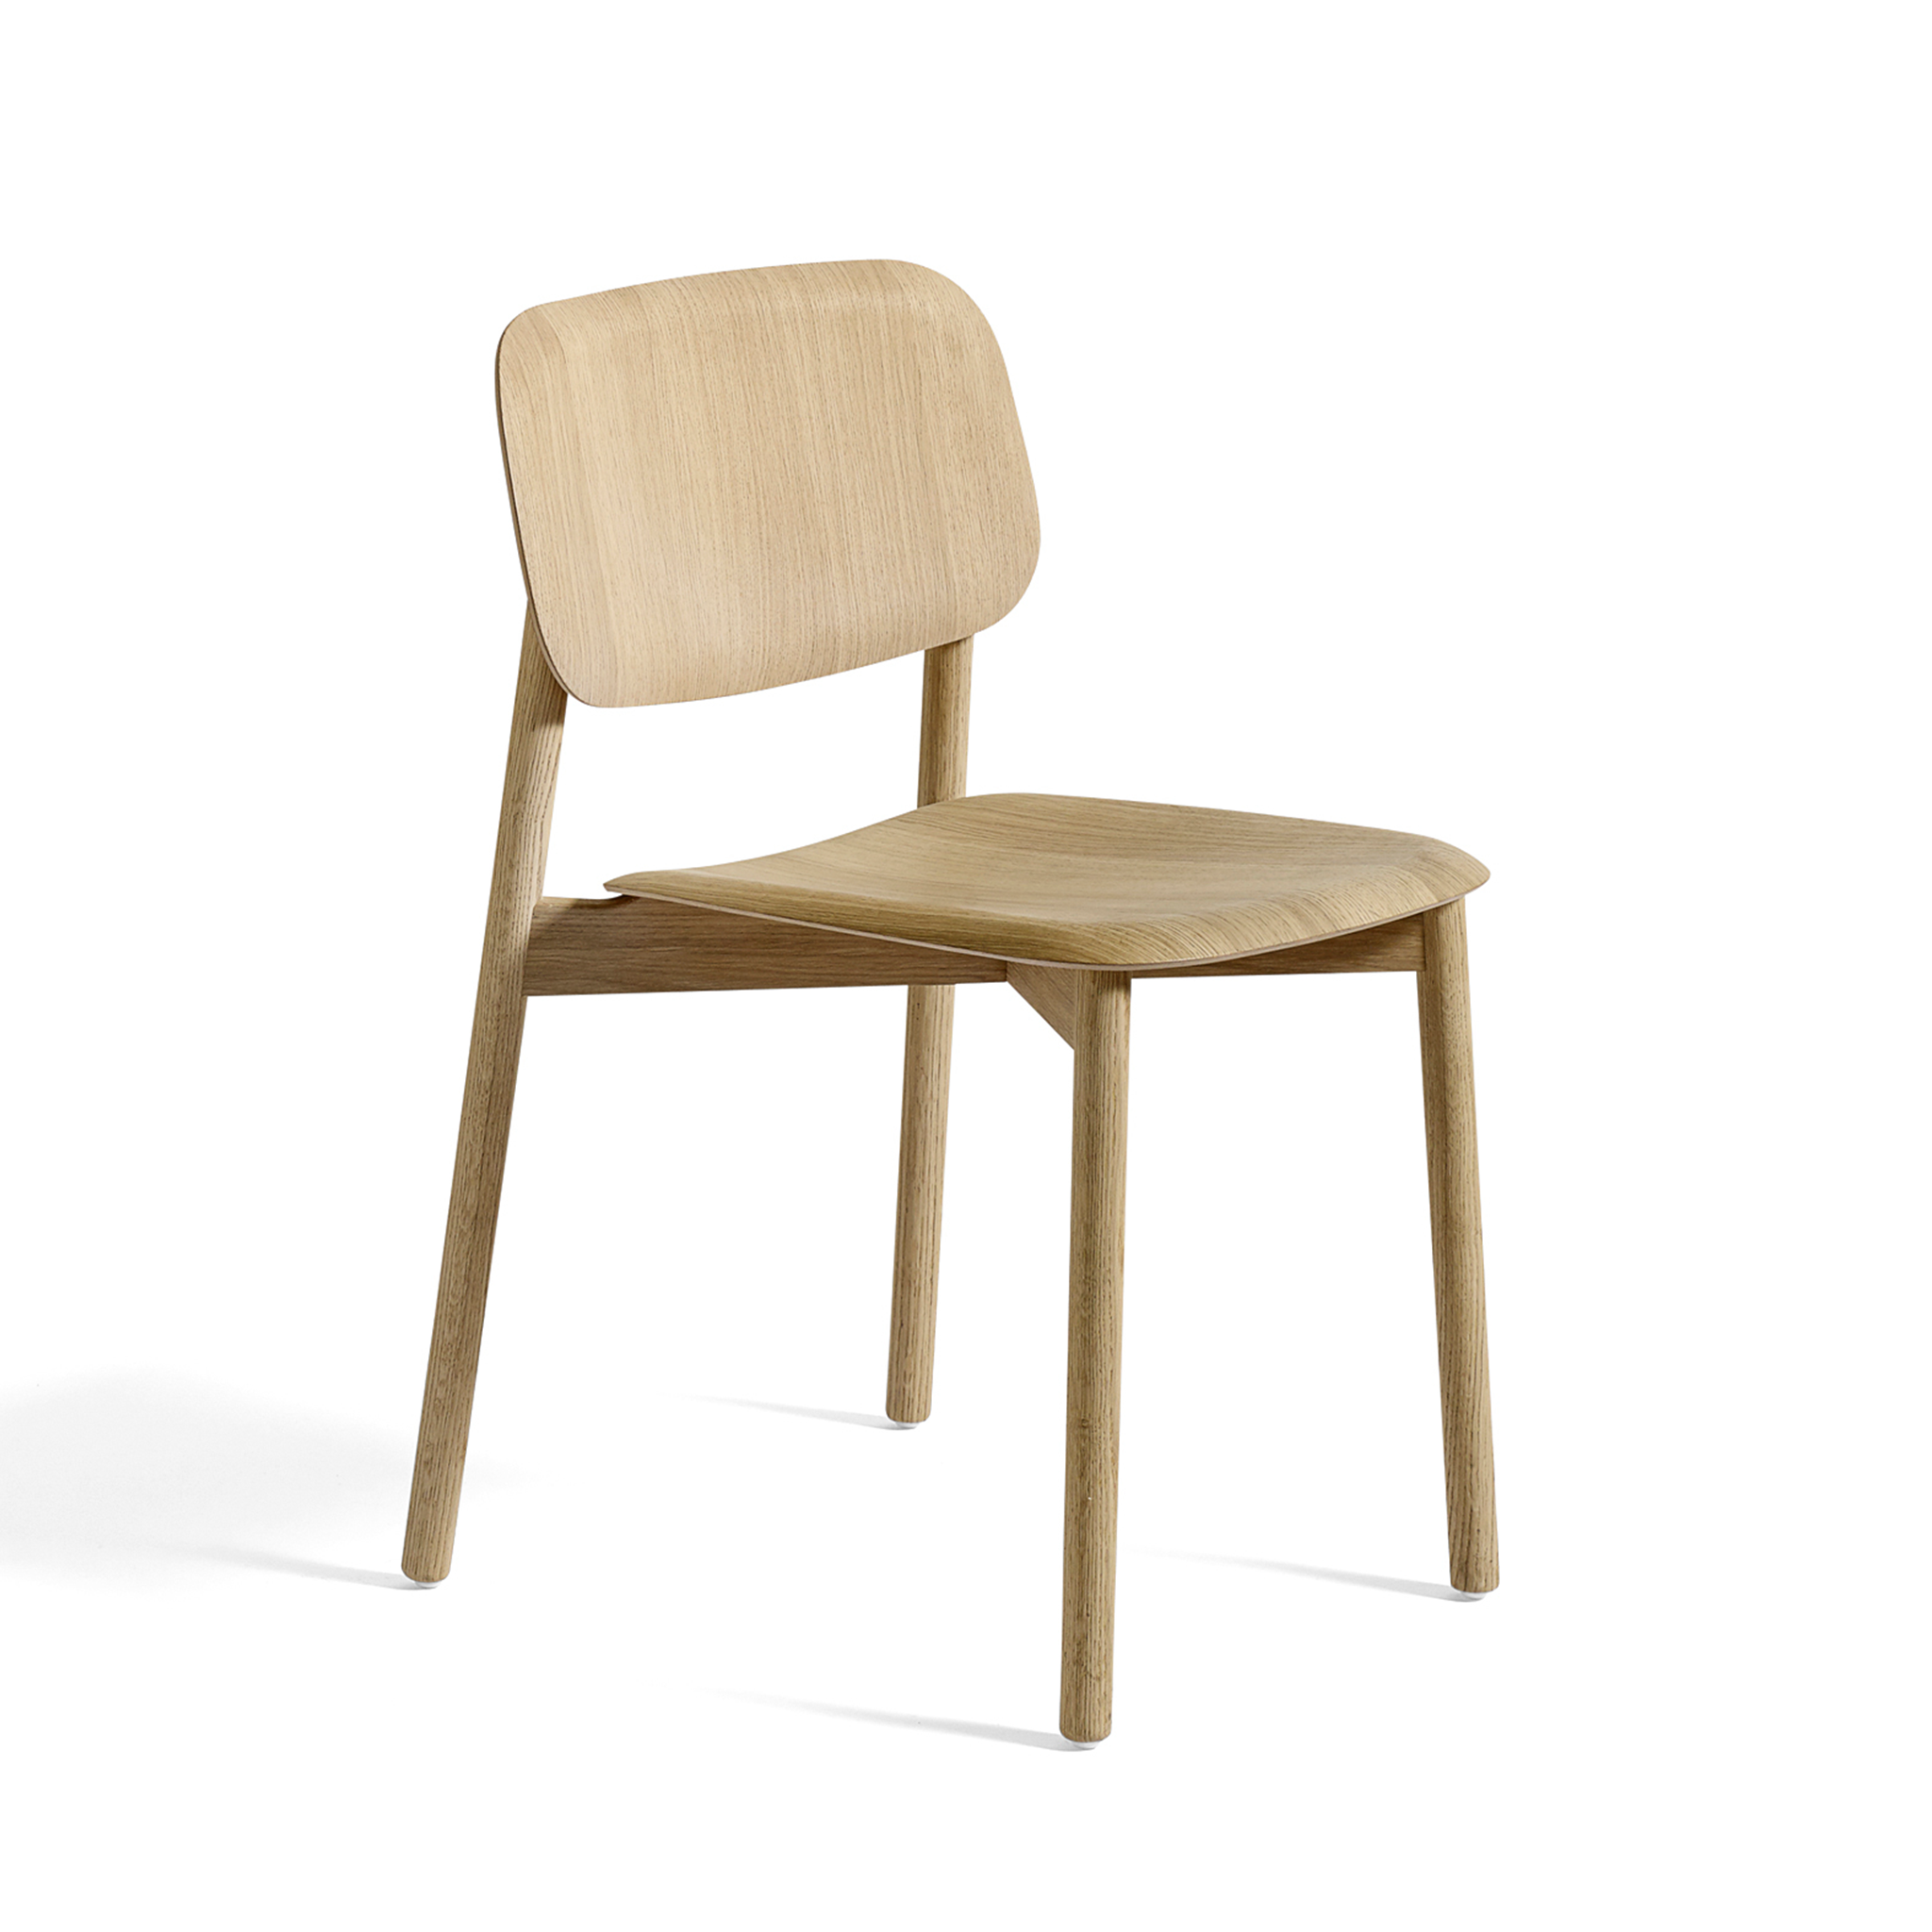 Soft Edge 12 Chair by Hay